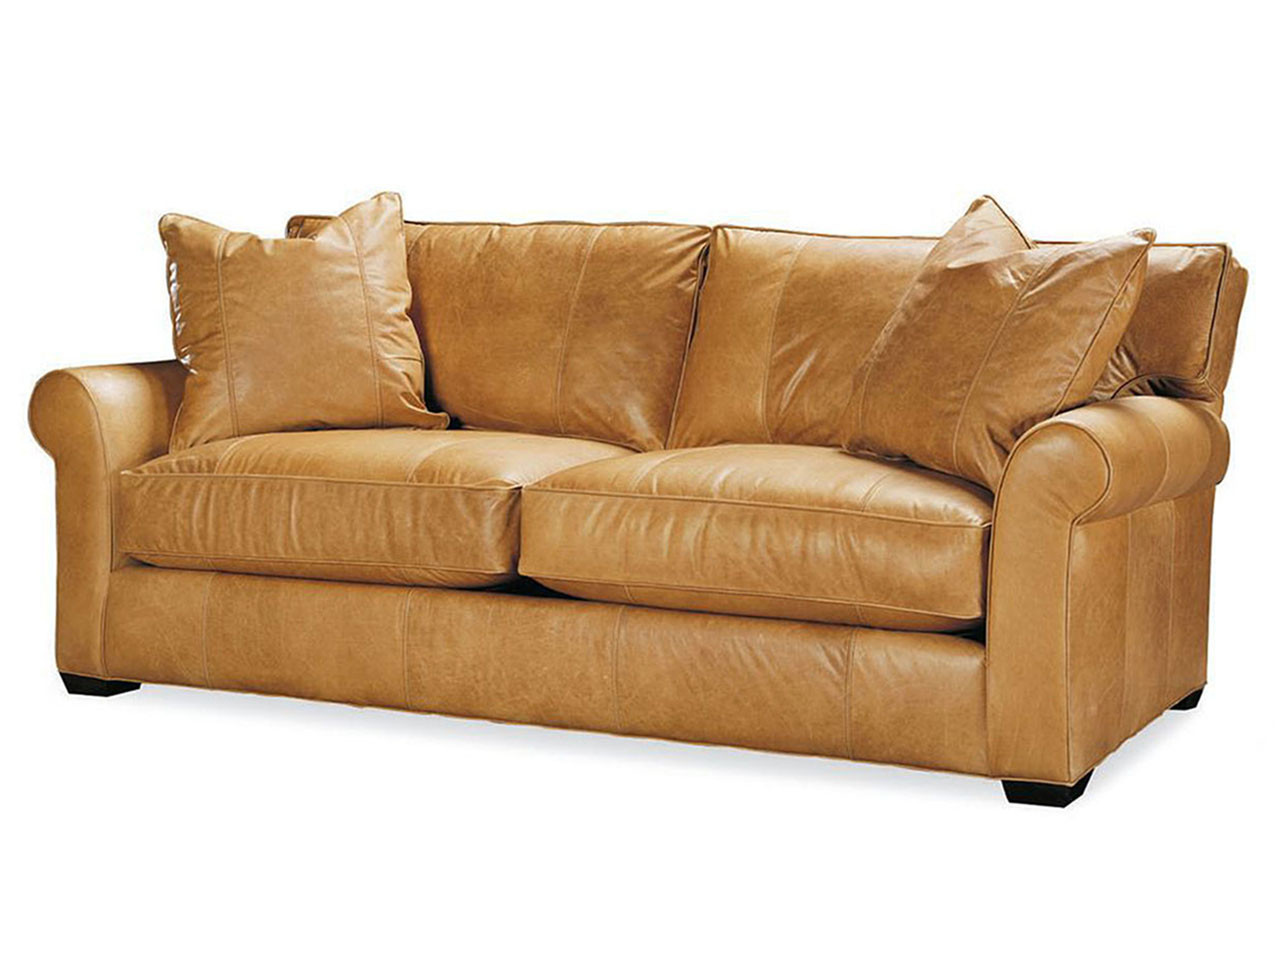 - Jessie Leather Queen Sleeper Leather Sleeper Sofas & Sofa Beds